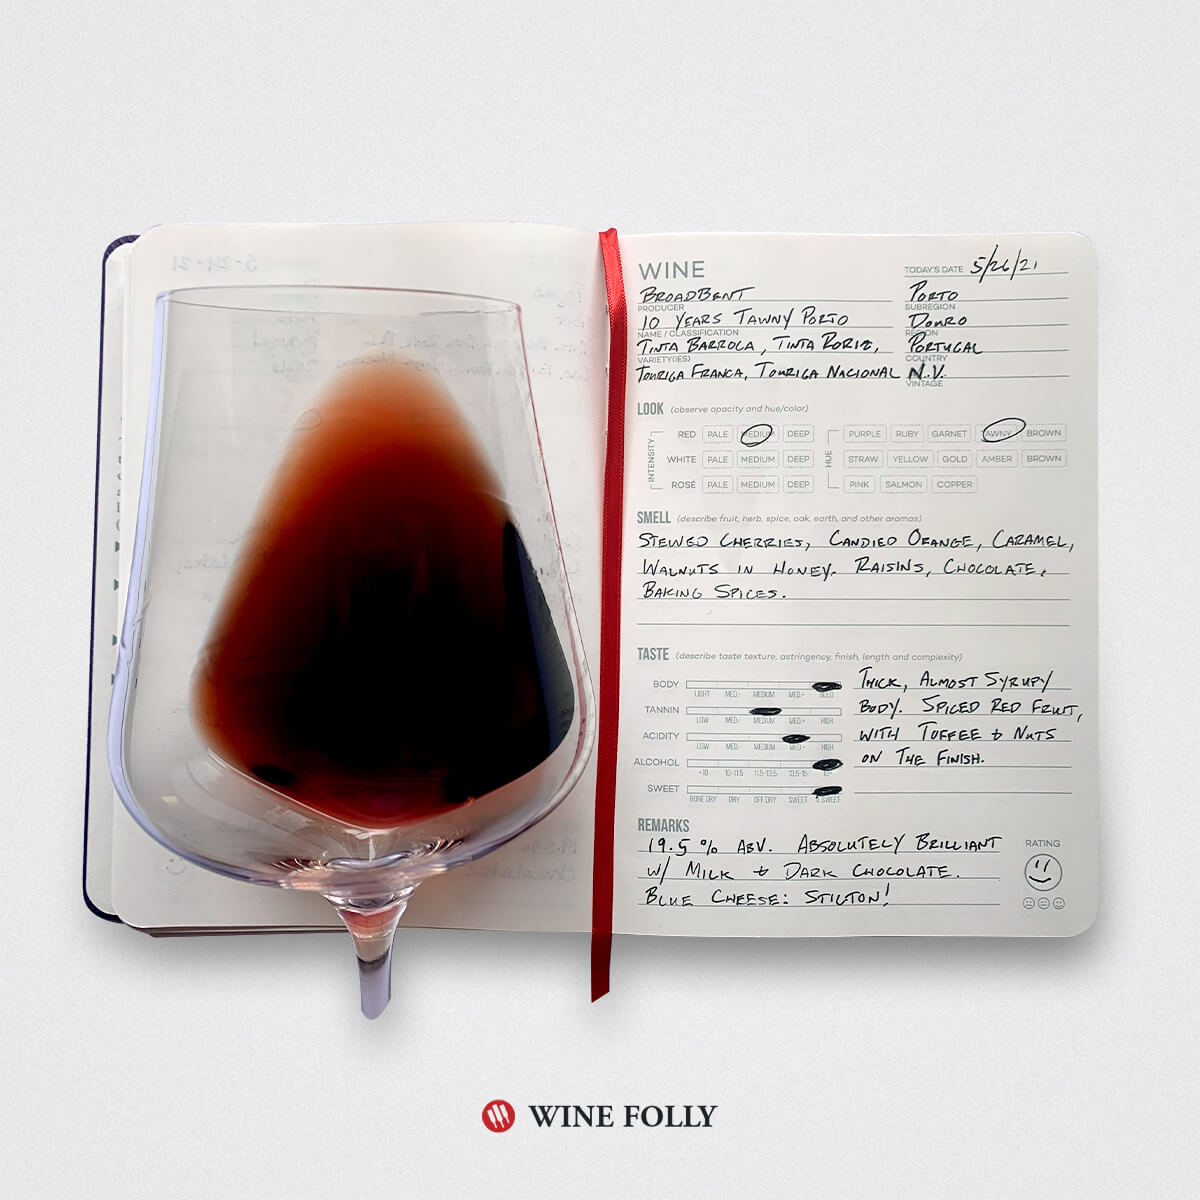 Journal entry for Tawny Port with a glass of wine